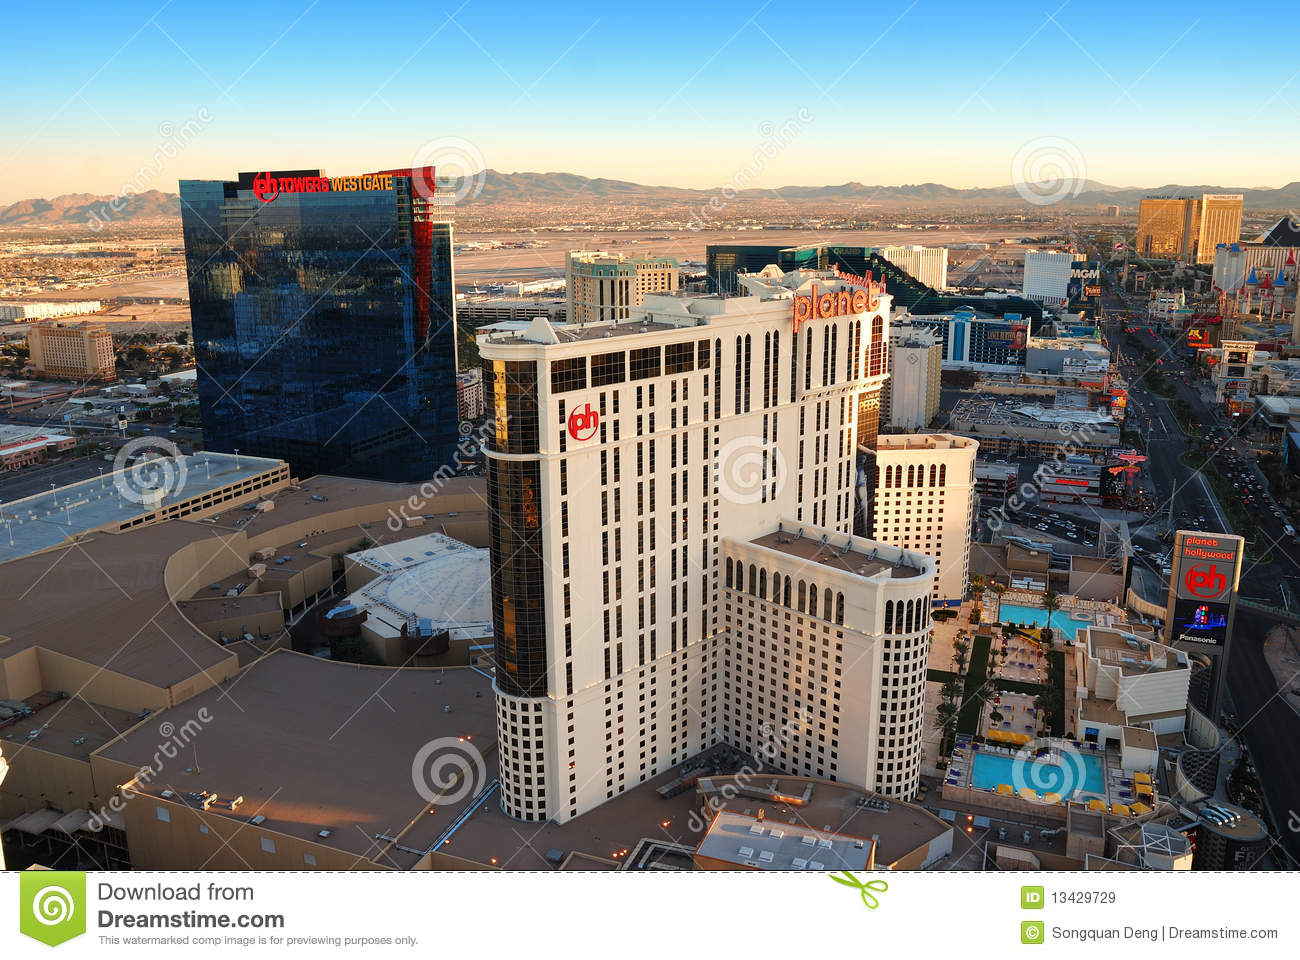 Planet Hollywood Hotel In Las Vegas Editorial Stock Image Image - Planet hollywood las vegas map